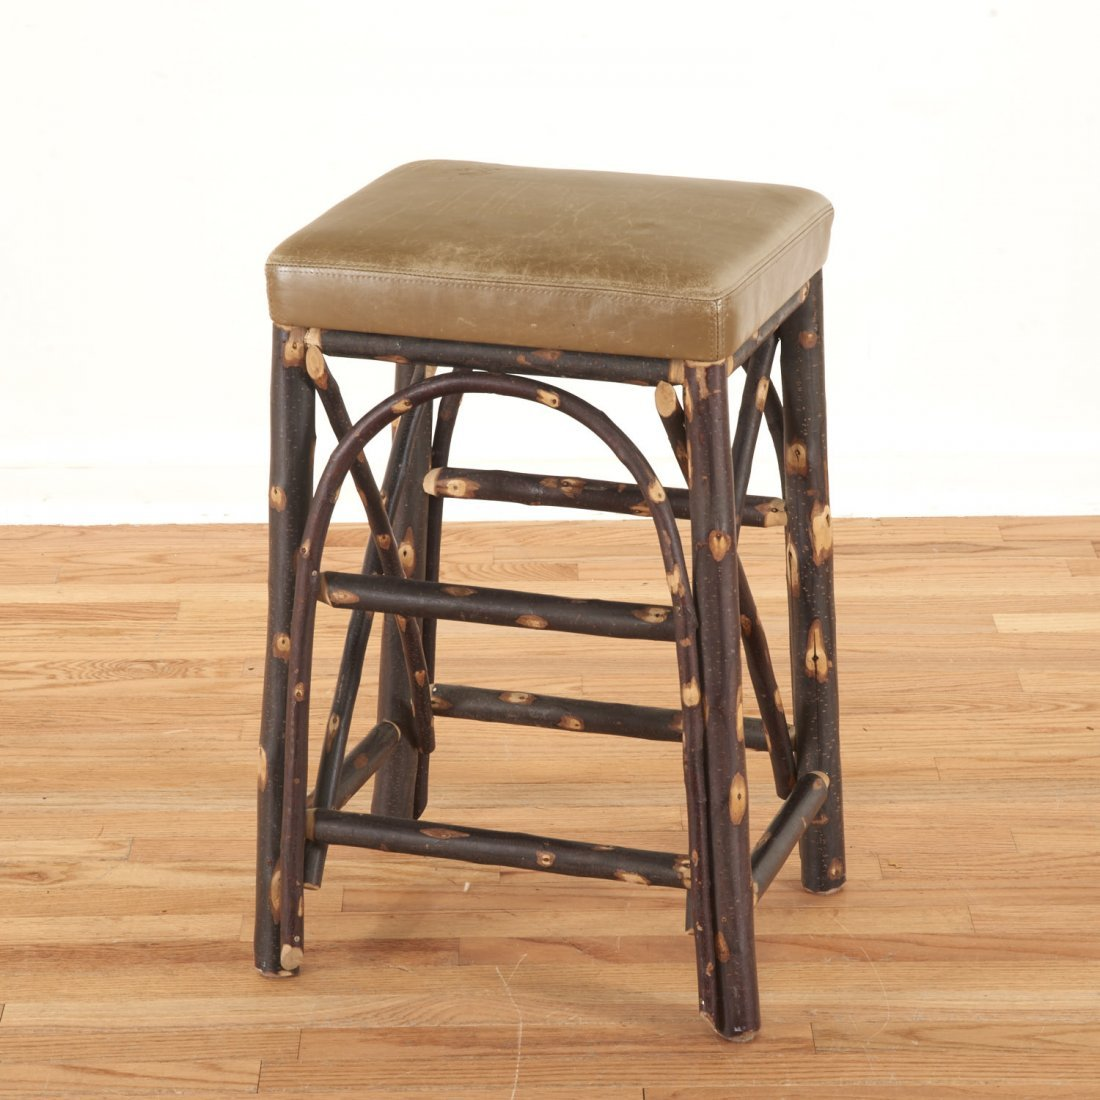 Christian Liaigre leather, chestnut stool